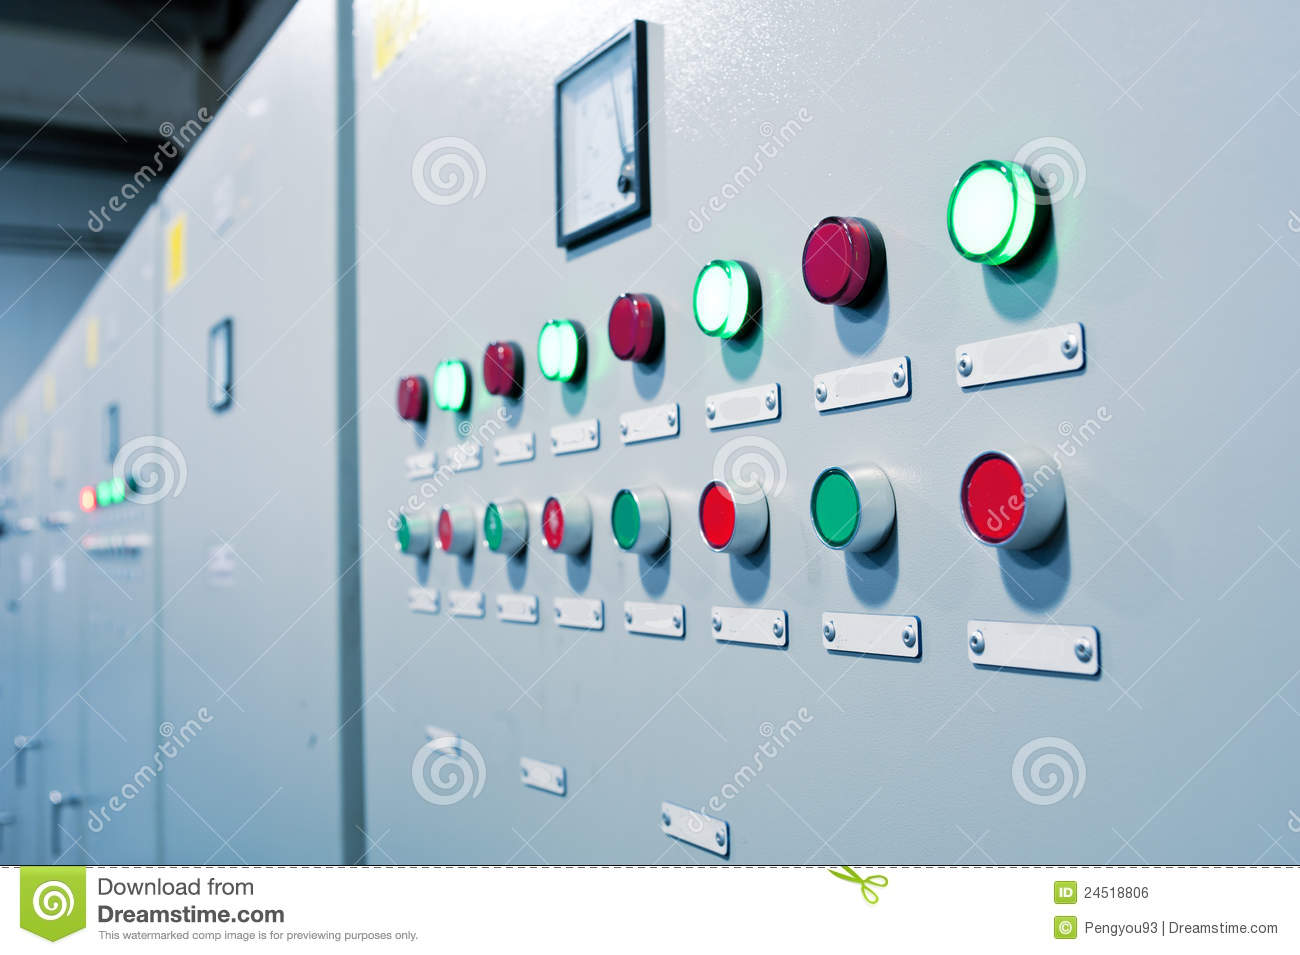 Button On The Control Room Cabinet Royalty Free Stock